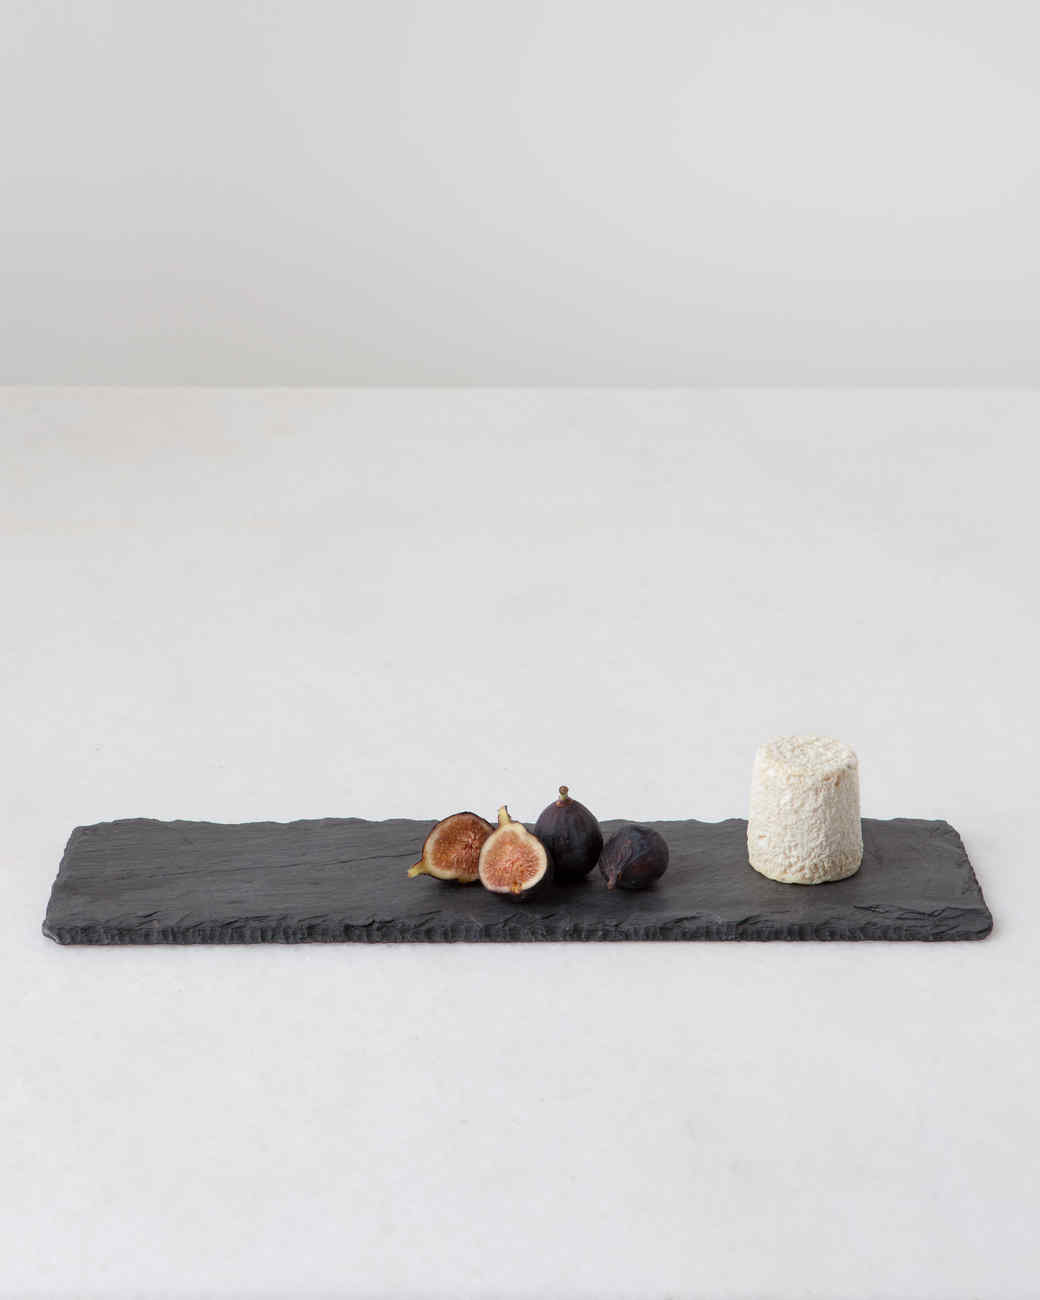 cheese-boards-d110478-0096.jpg